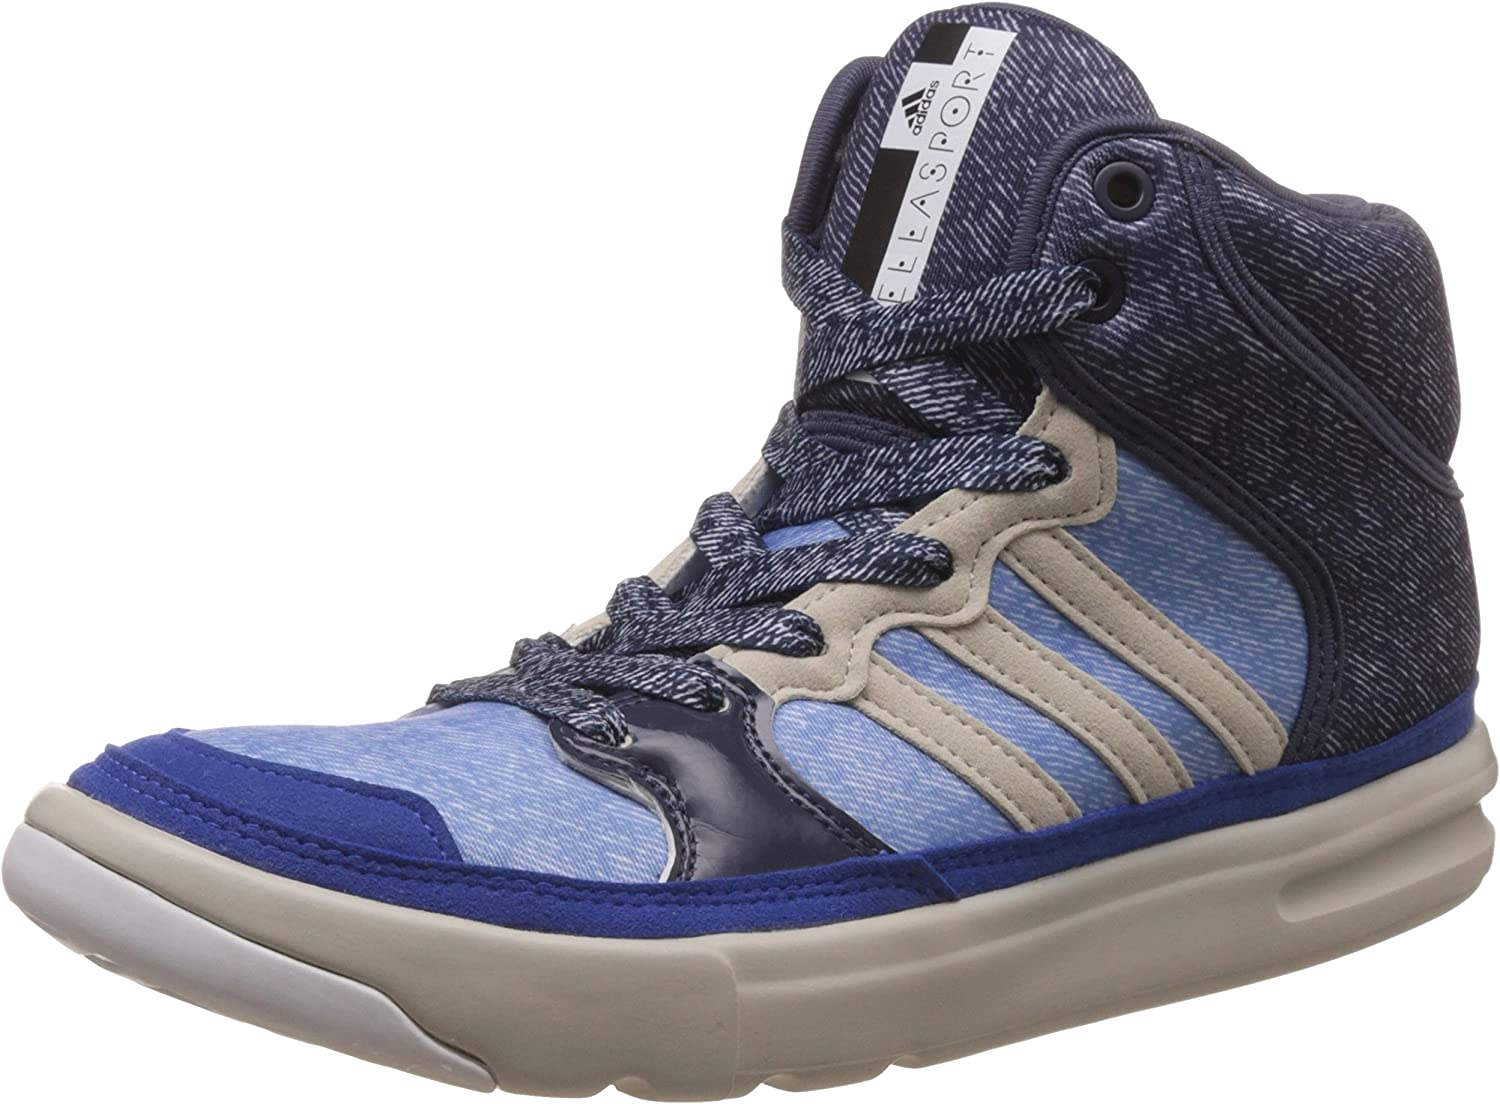 adidas Stellasport Womens Irana High Top Trainer